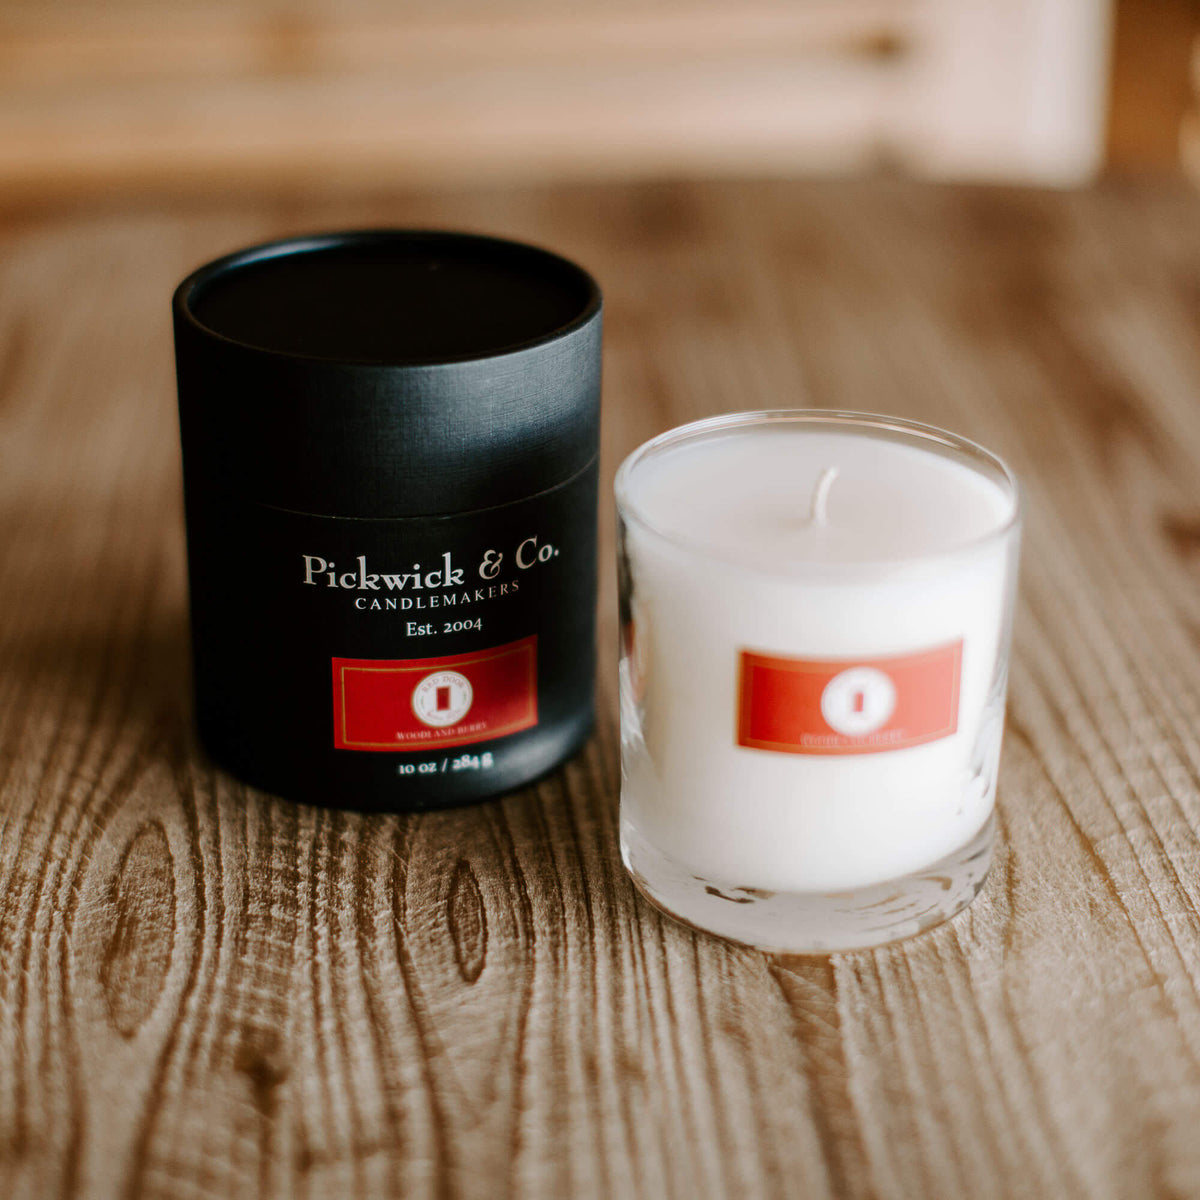 Pickwick & Co. candle called Woodland Berry featuring raspberry, red currant and mulberry